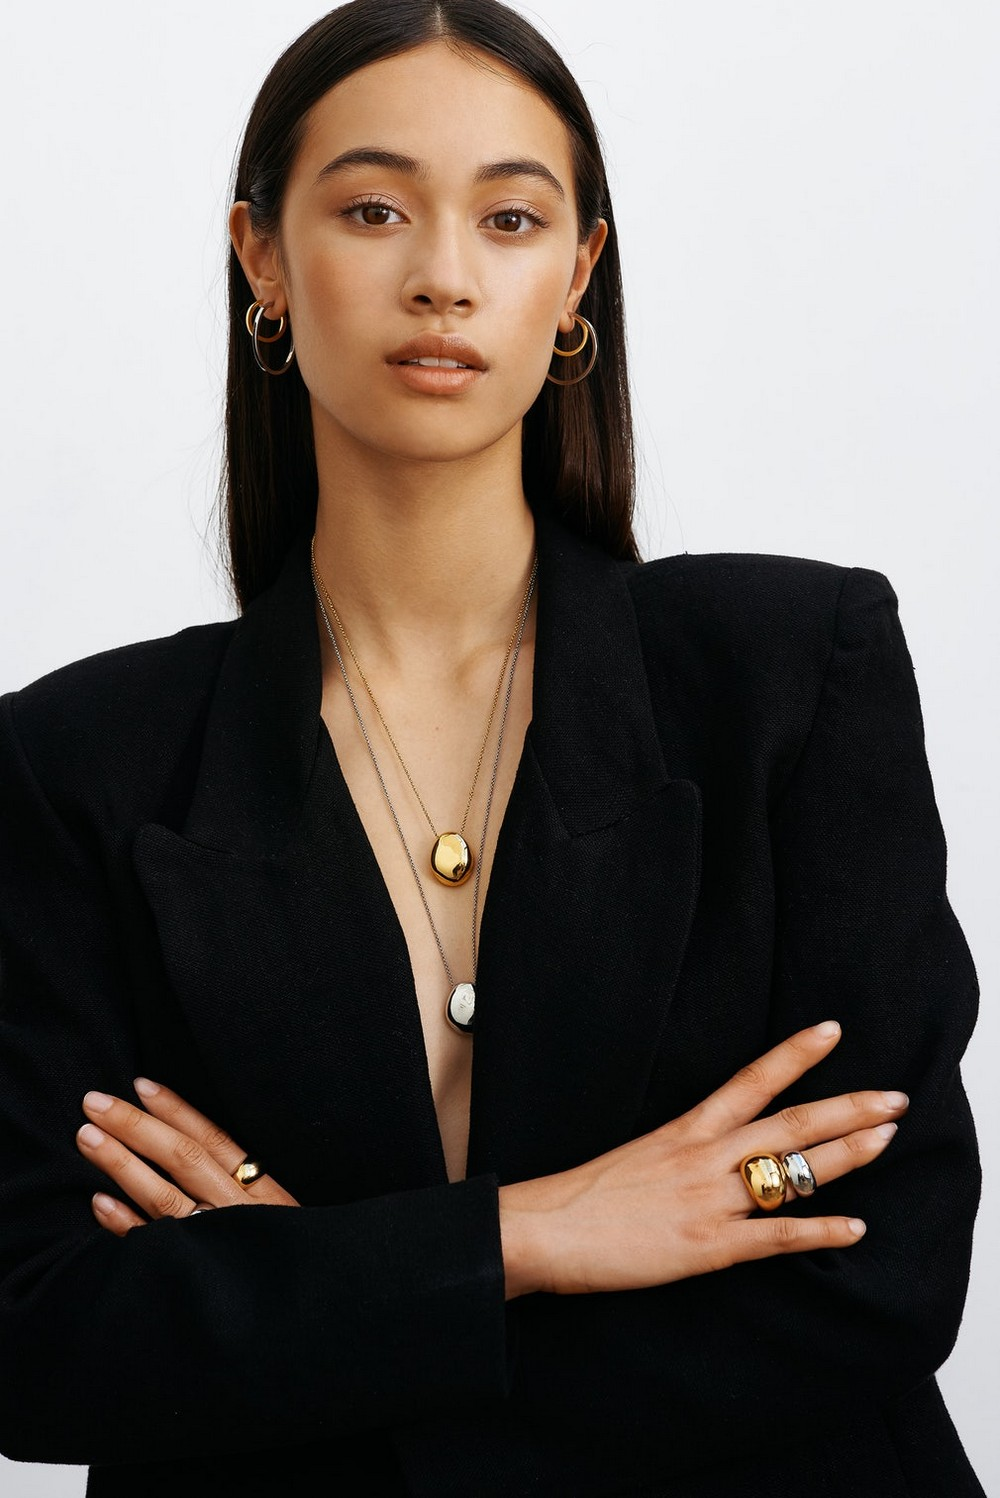 5 Remarkable Jewelry Brands that Stand for Sustainable Design 2 jewelry brands 5 Remarkable Jewelry Brands that Stand for Sustainable Design 5 Remarkable Jewelry Brands that Stand for Sustainable Design 2